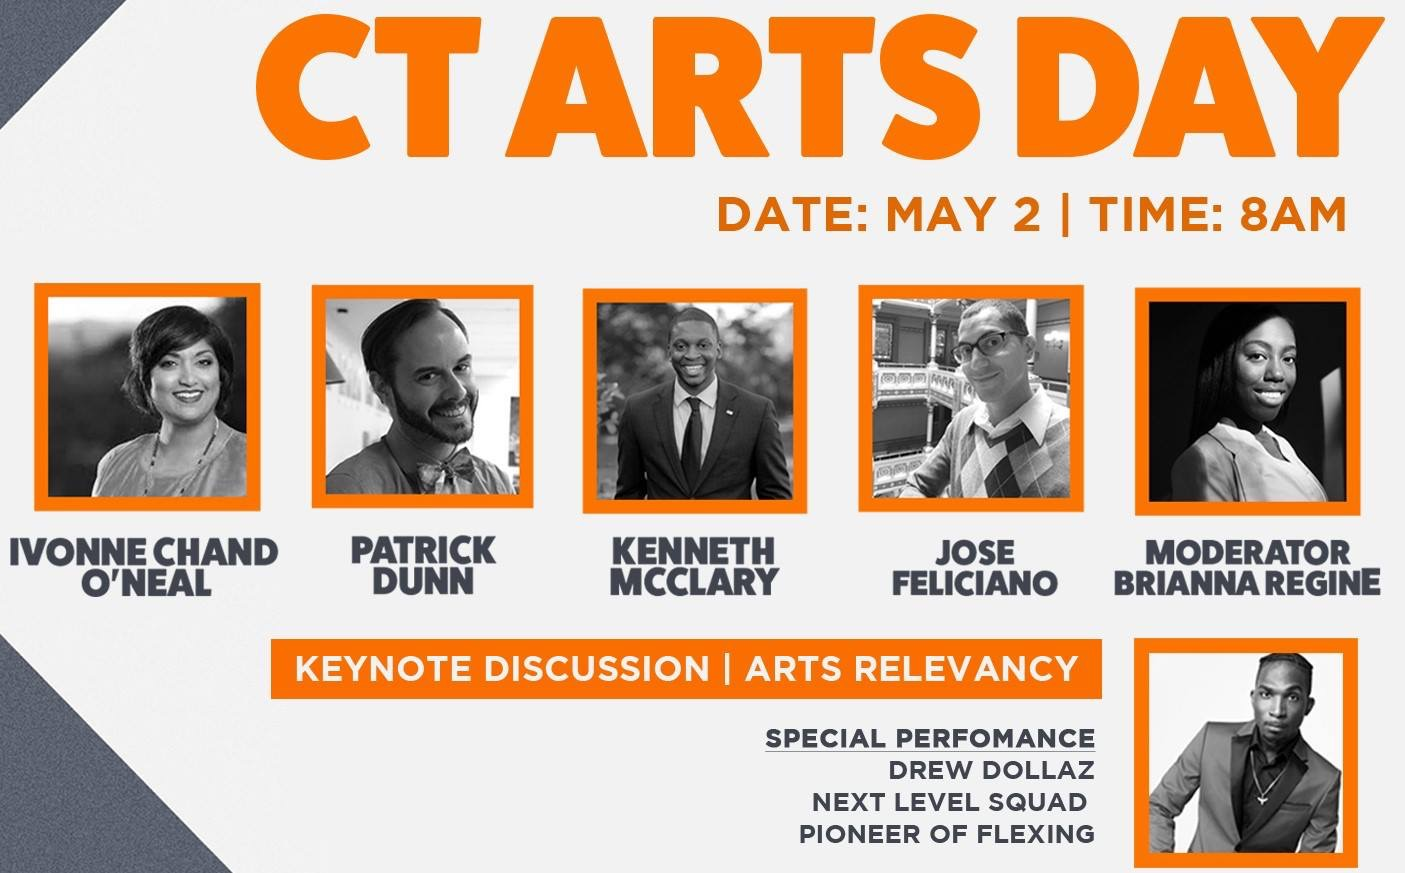 CT Arts Day May 2nd